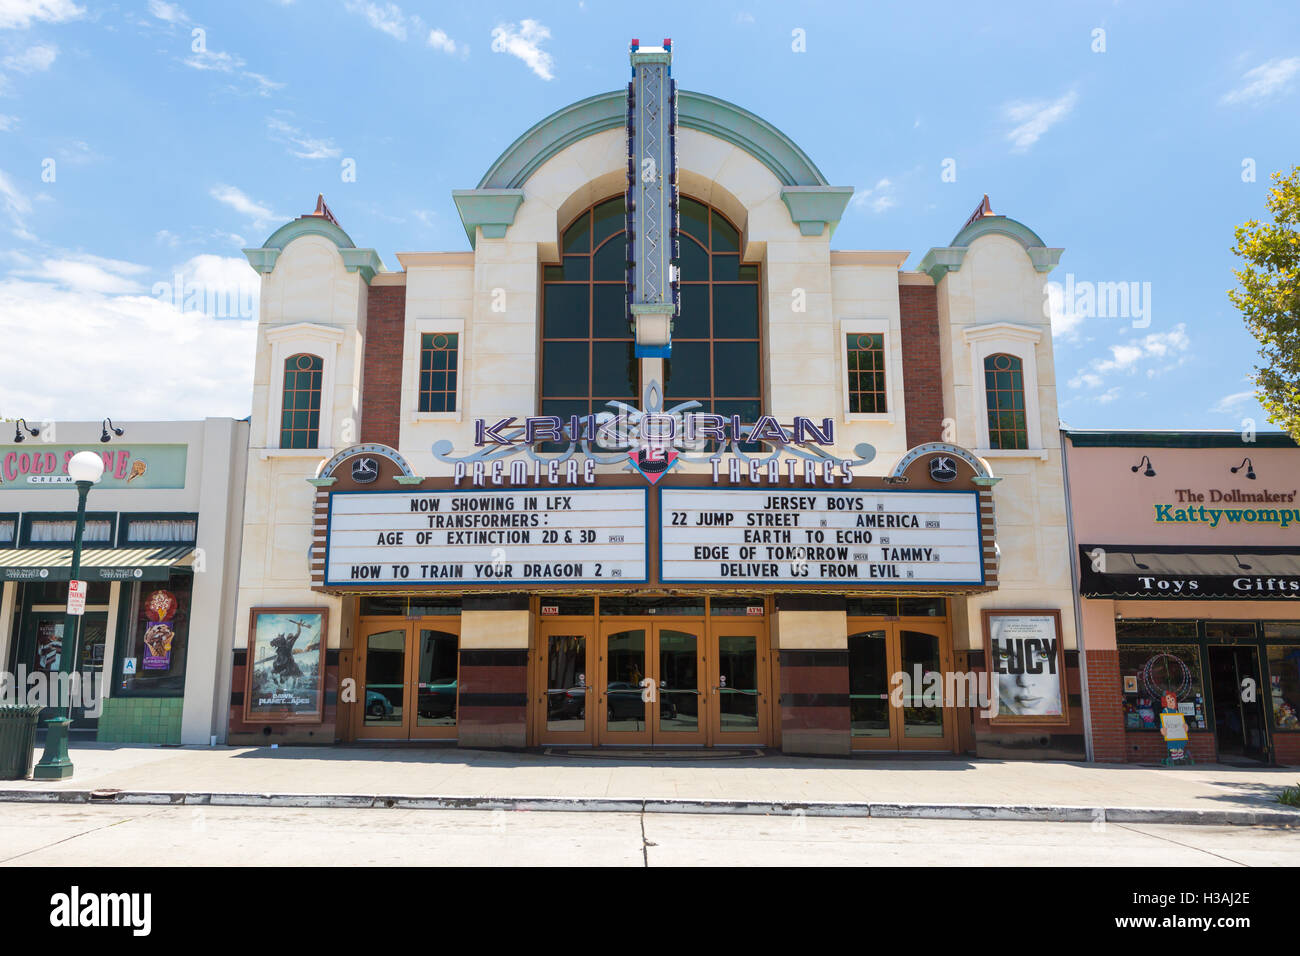 Los Angeles, USA - 6 July, 2014: The Krikorian Theater on S Myrtle Ave in Monrovia, Los Angeles, USA - Stock Image